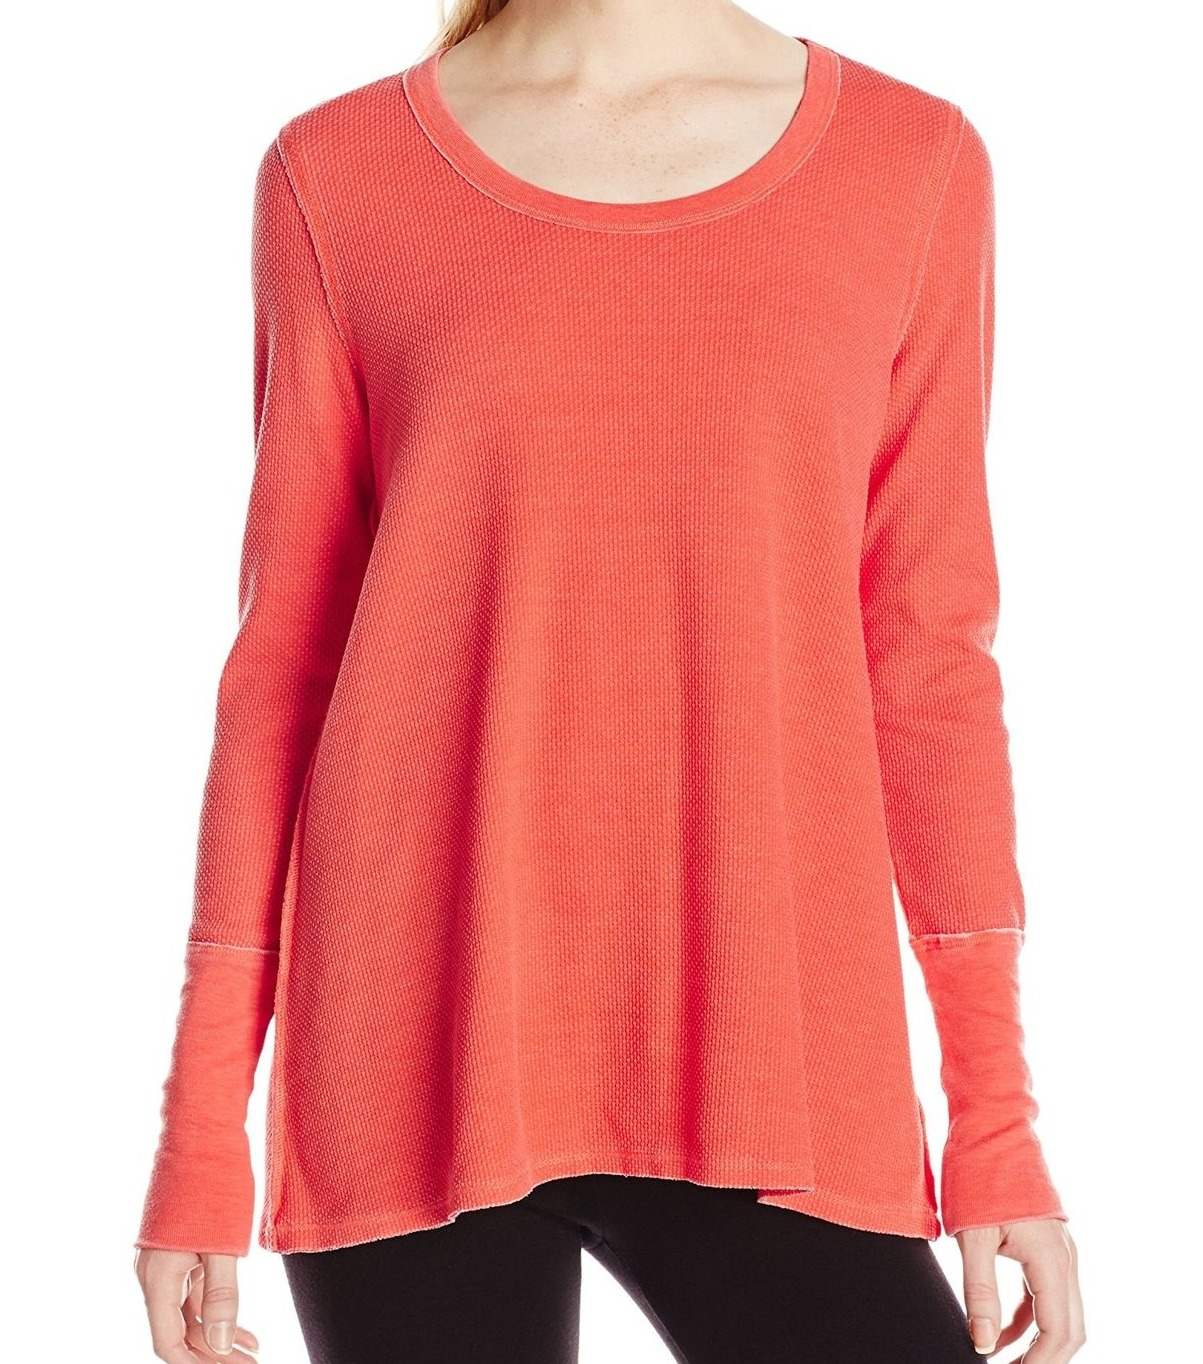 Kensie-NEW-Orange-Women-039-s-Size-XL-Thermal-Tunic-Top-Athletic-Apparel-49-846